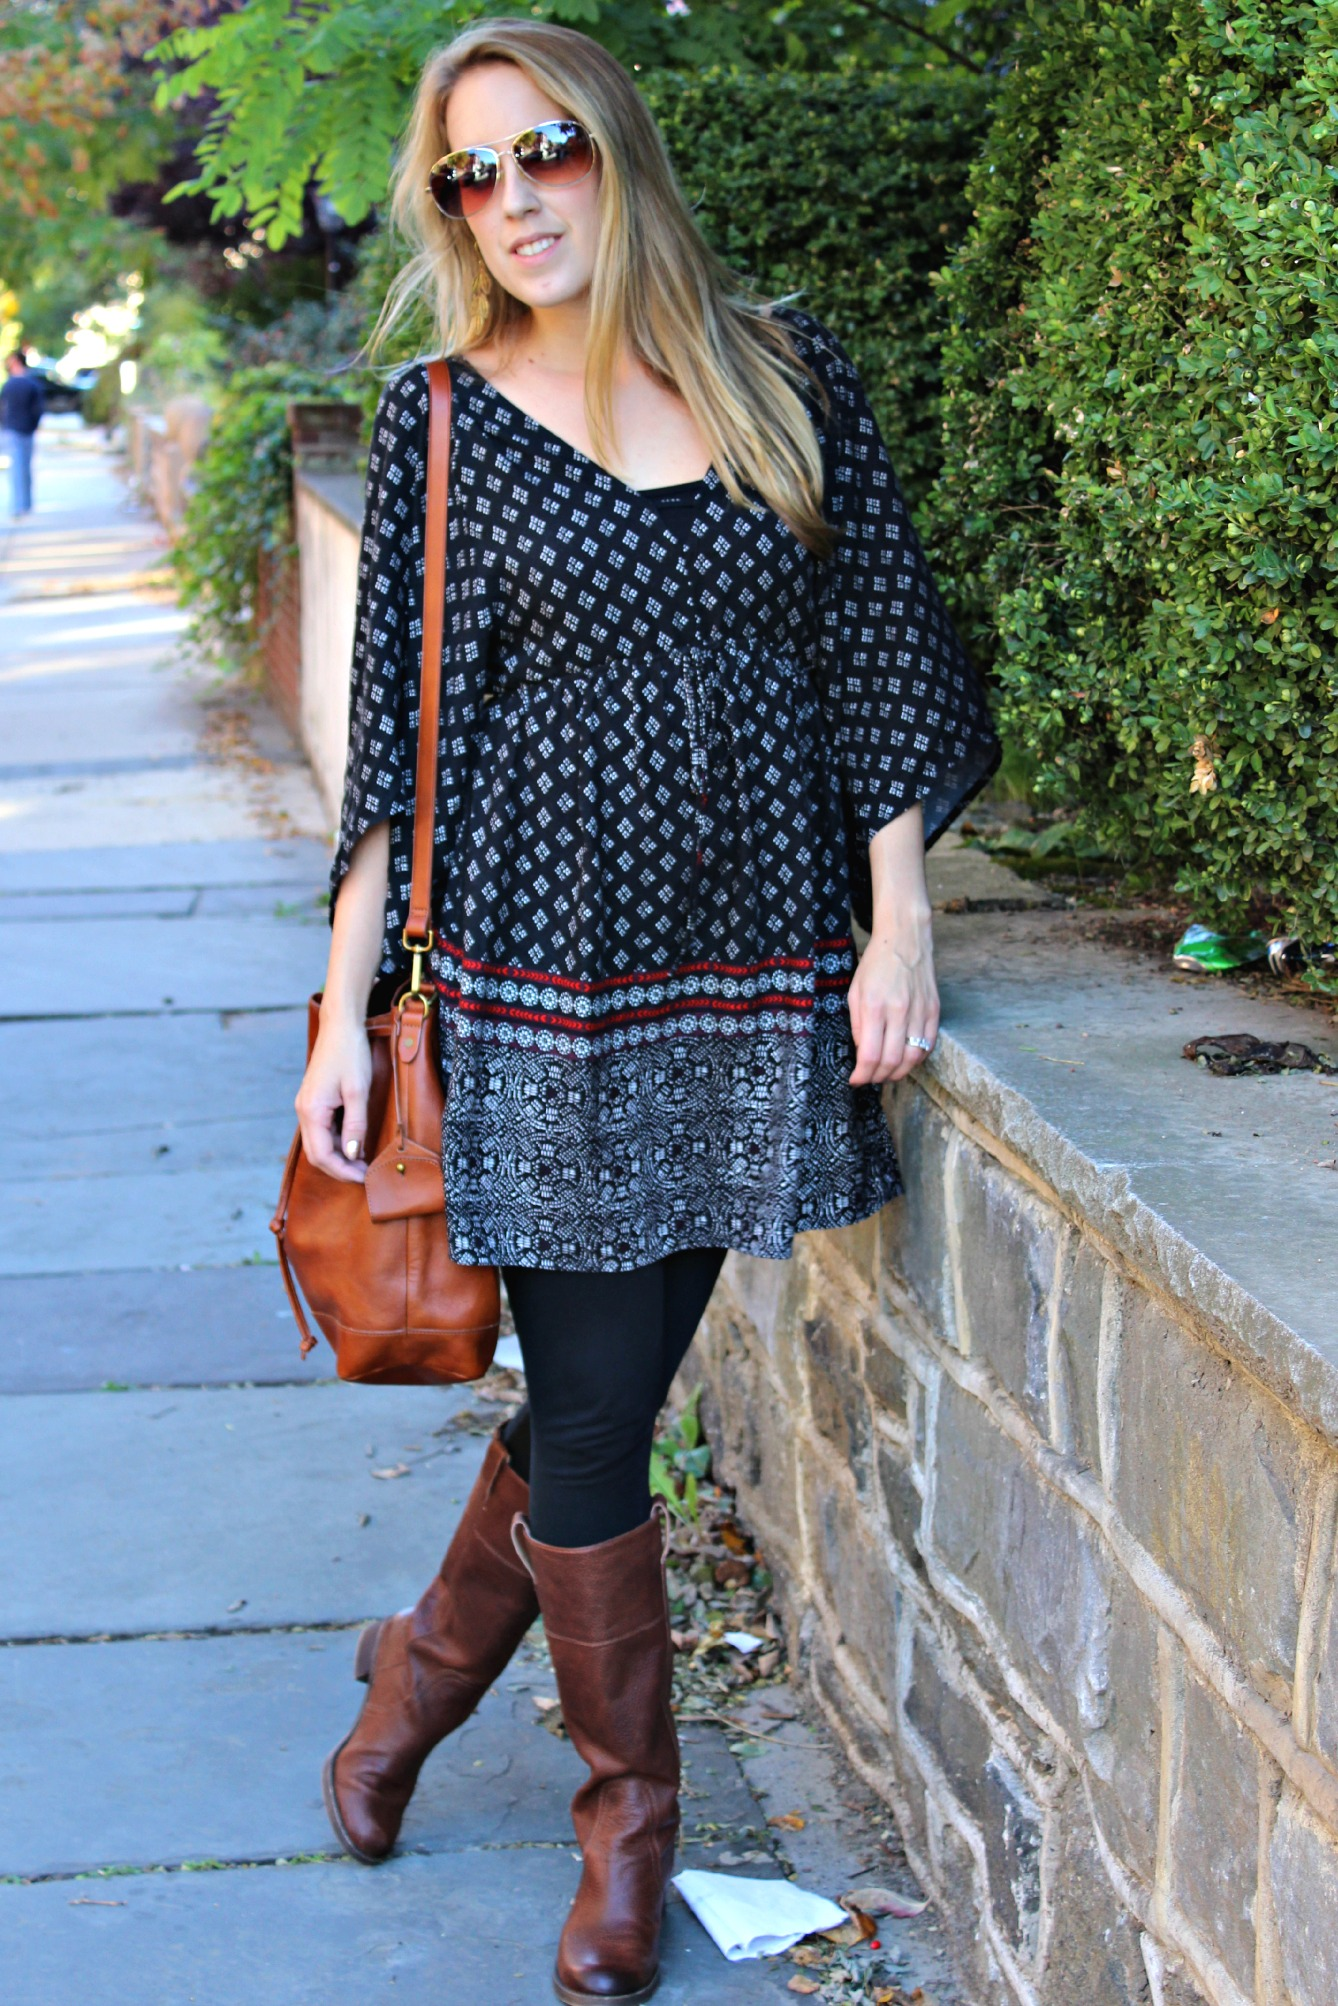 Wearing: That Fall Dress